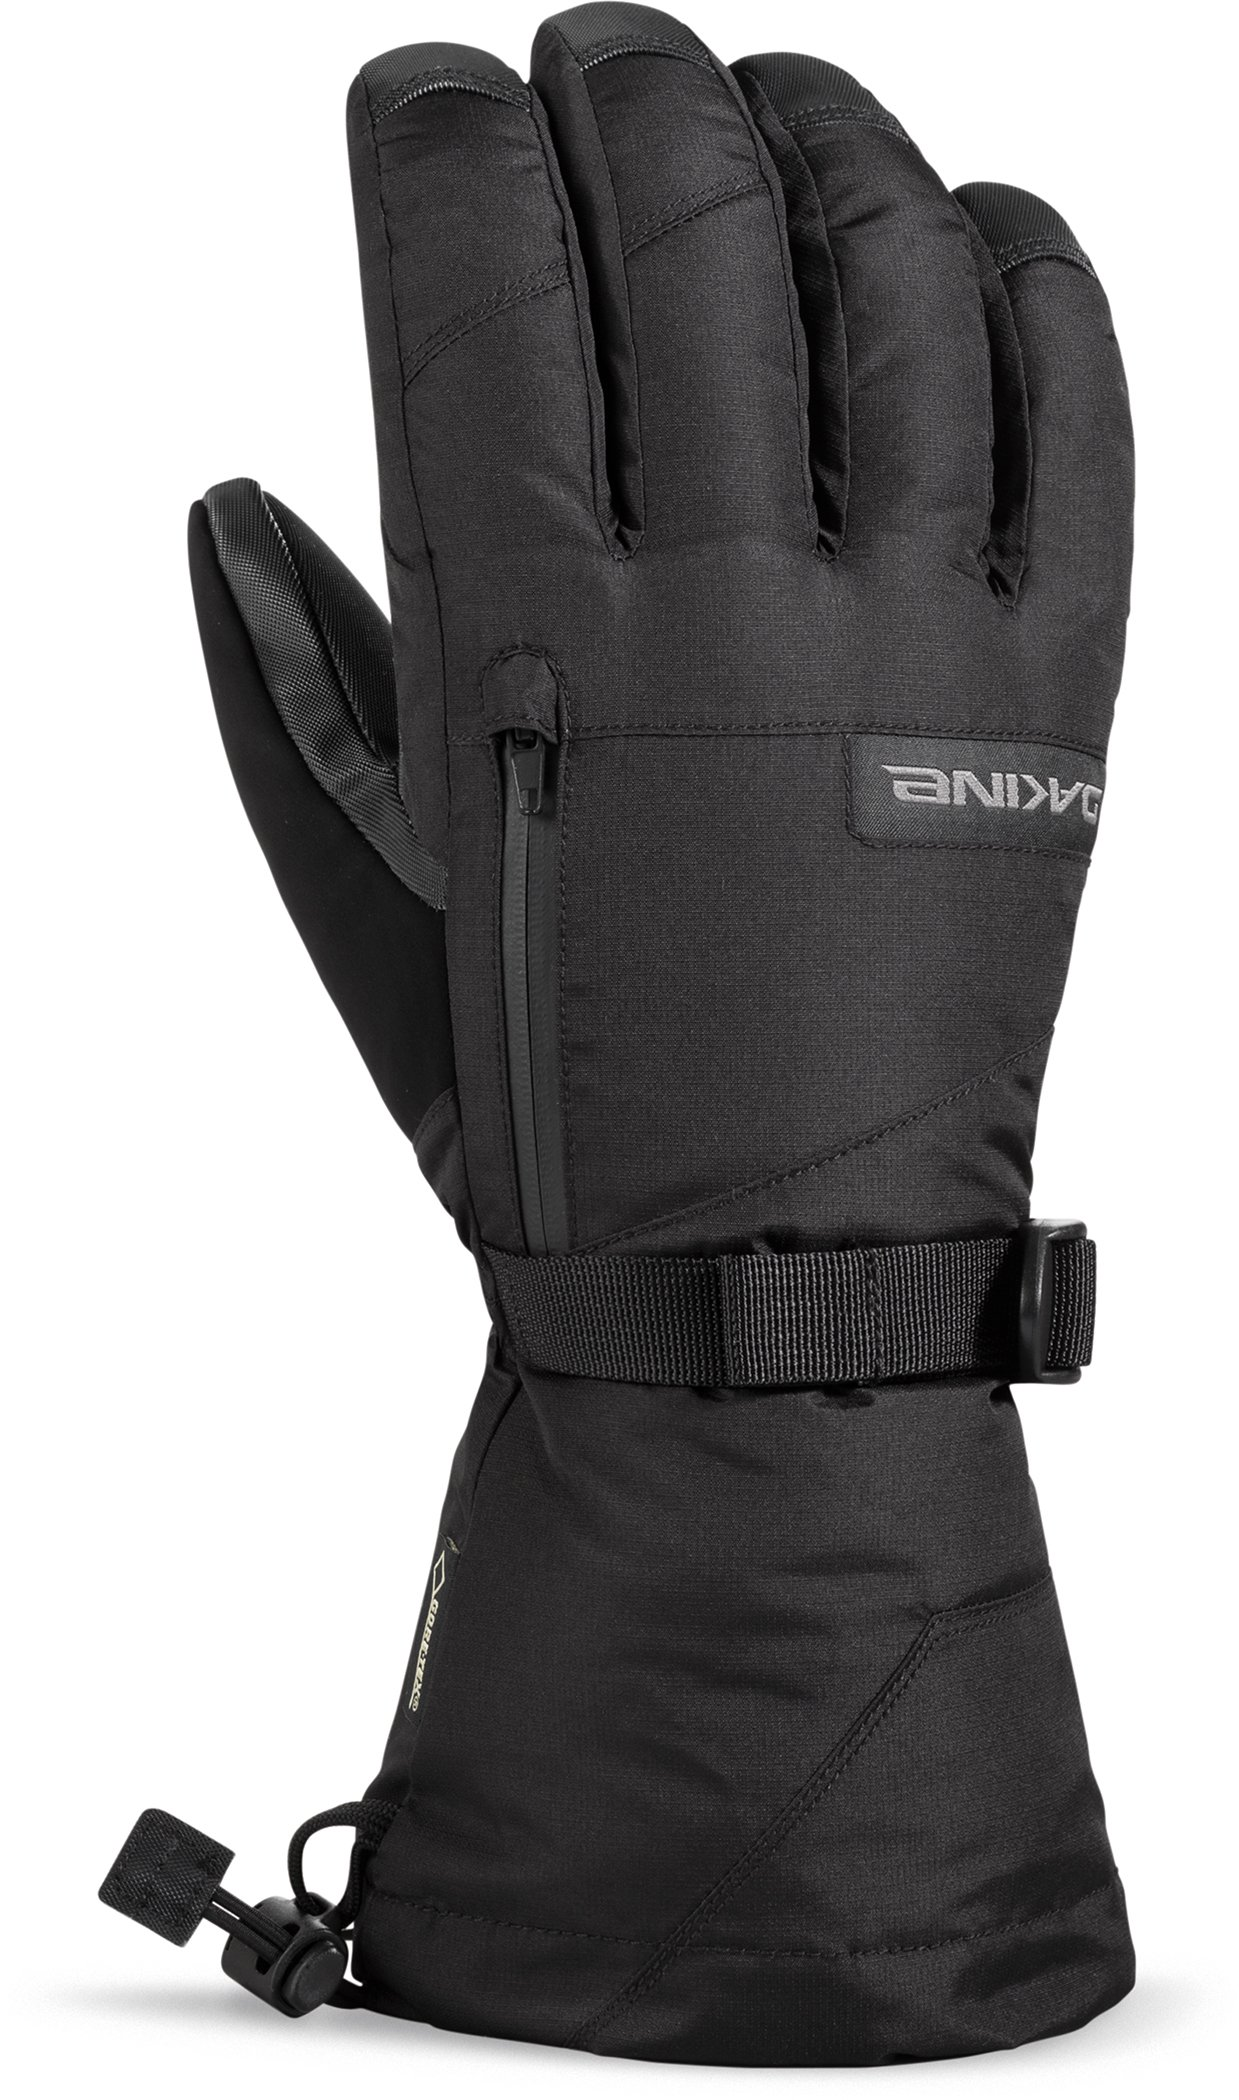 Dakine Men's Titan Glove, Black, X-Large by Dakine